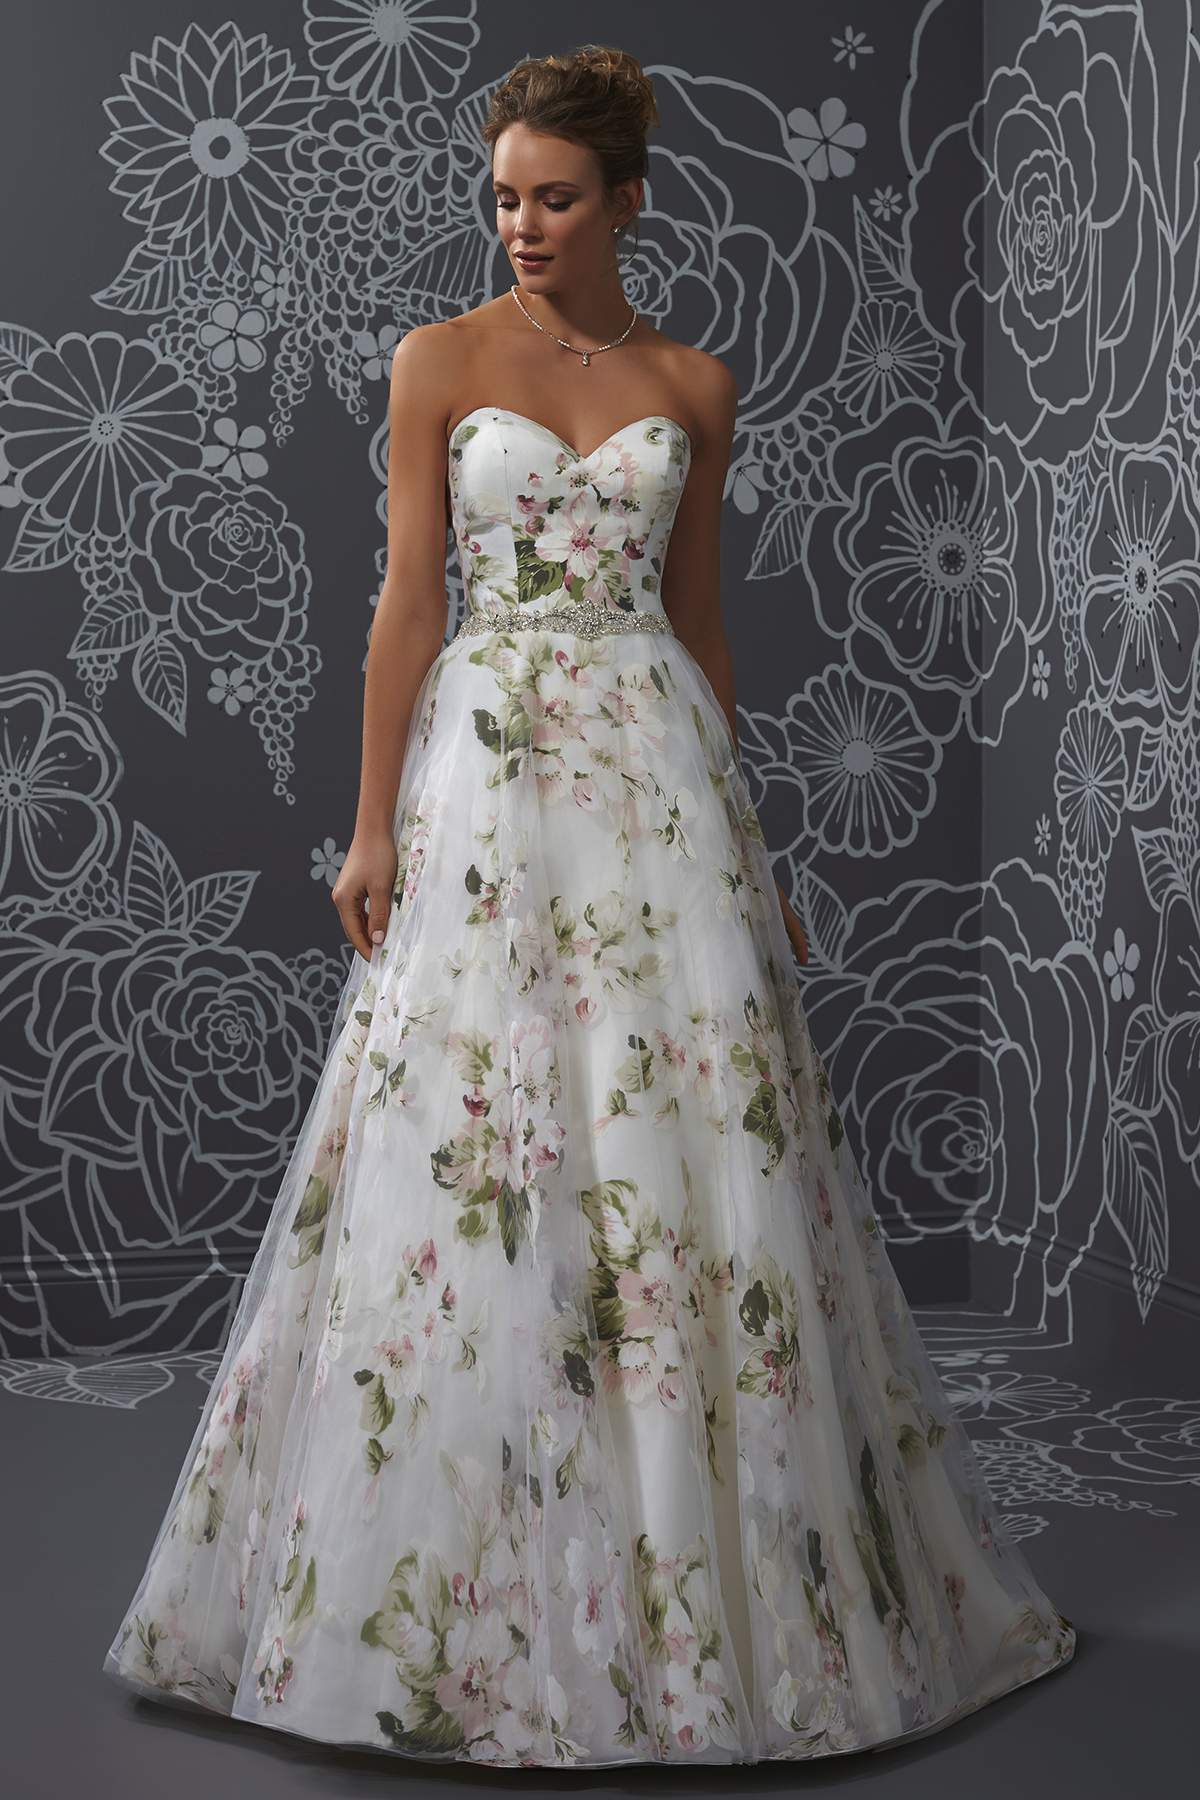 Lily By Romantica Of Devon Find Your Dream Dress